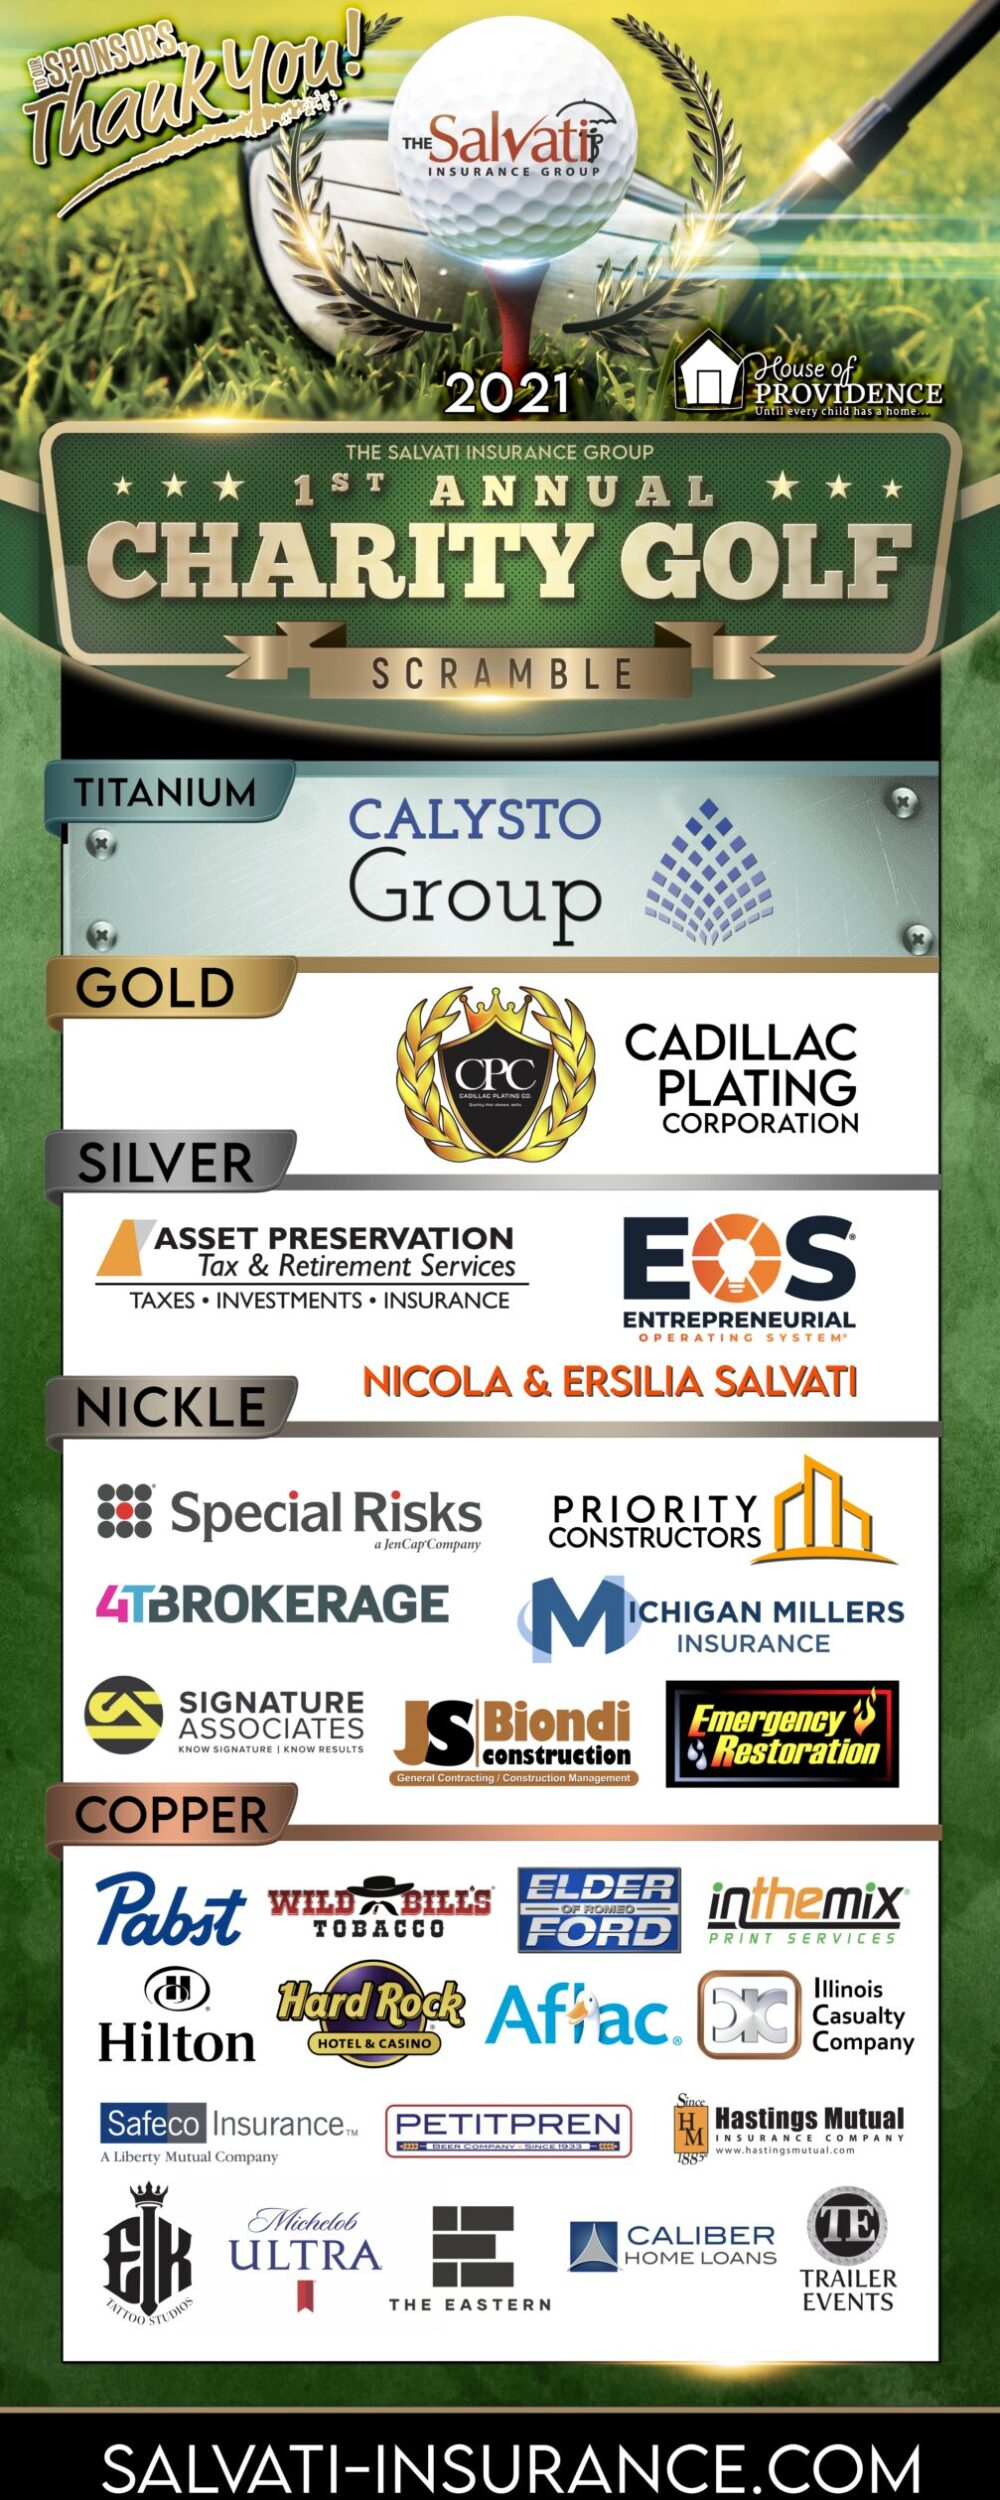 Sponsor Roll up banner stand copy